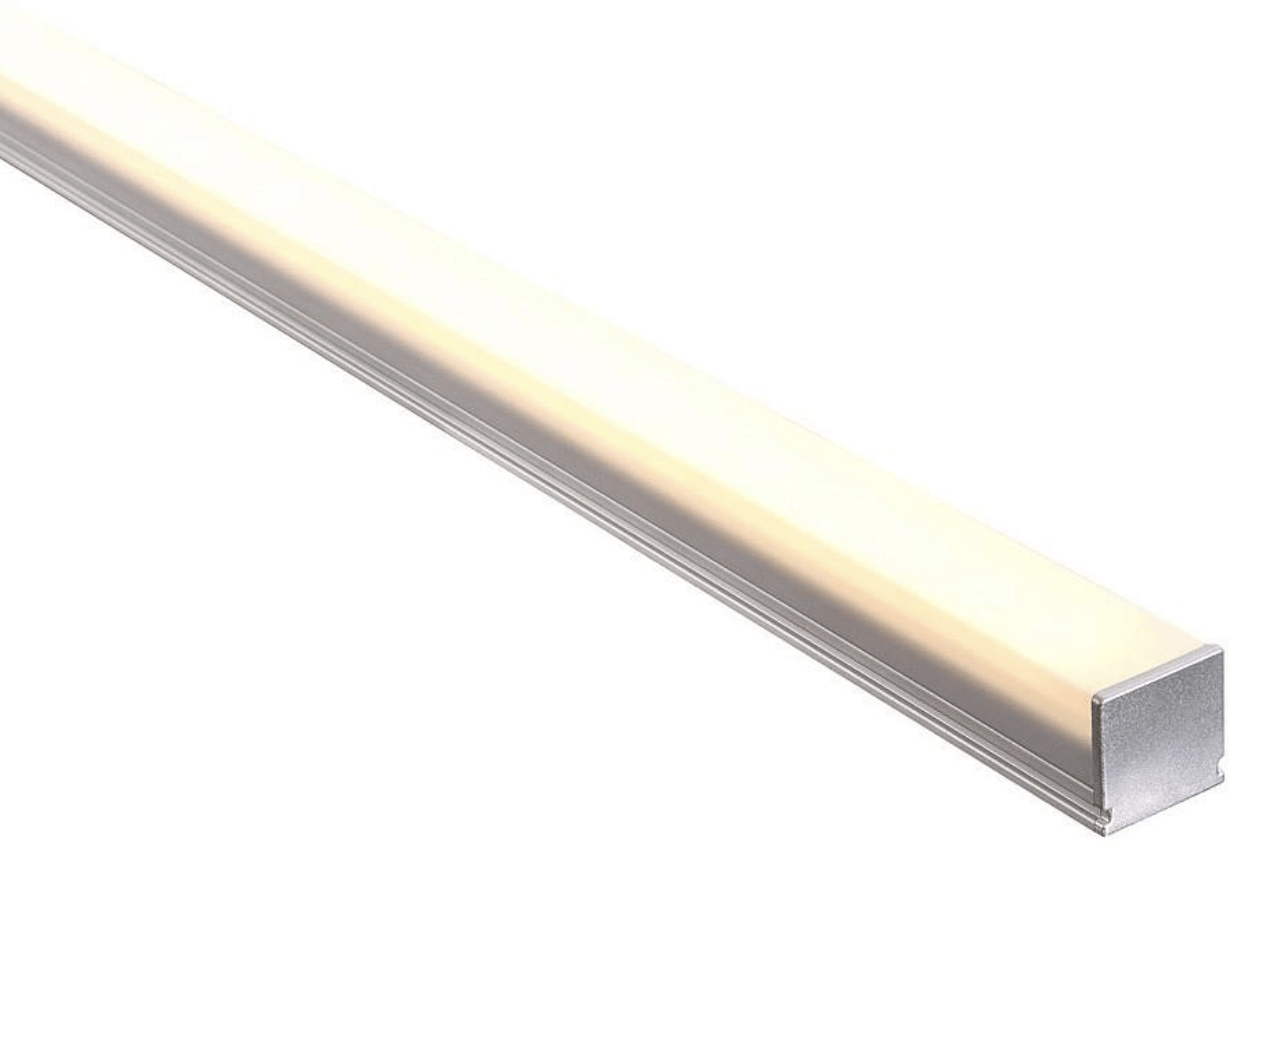 Profiles Surface Mounted Profile - Deep Square - HV9693-2114 lighting shops lighting stores LED lights  lighting designer